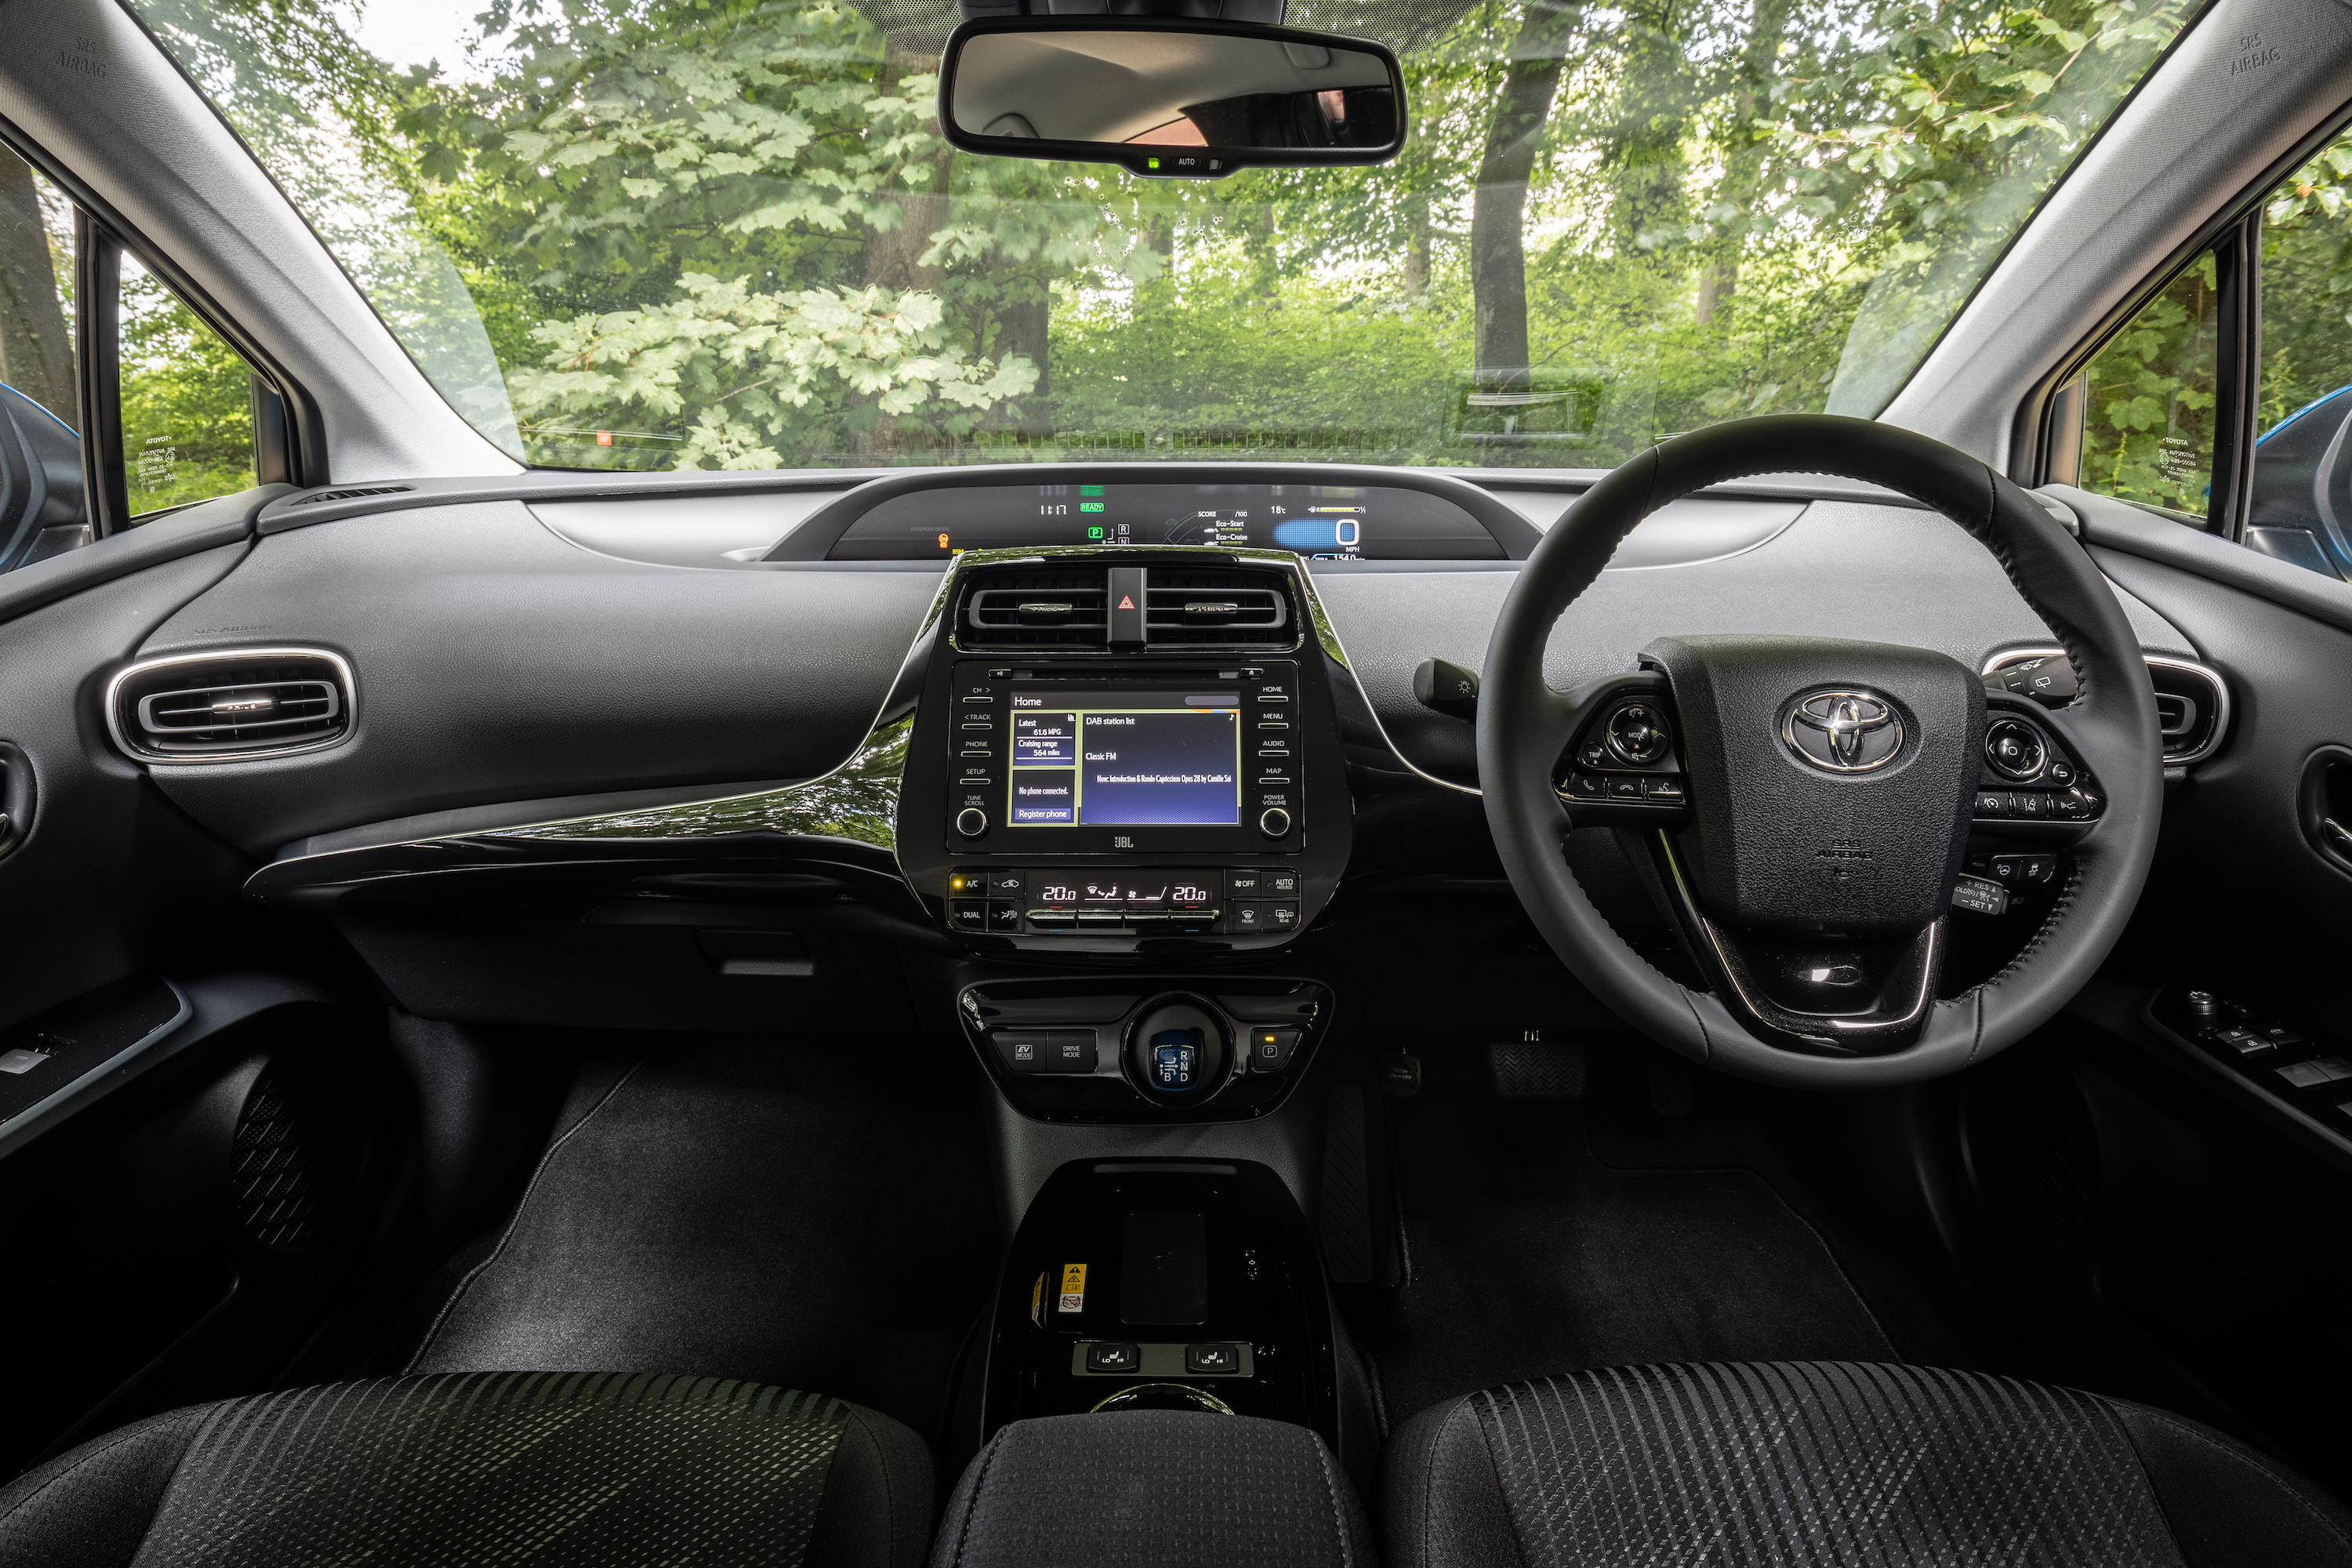 The interior of the car has been given a crucial update